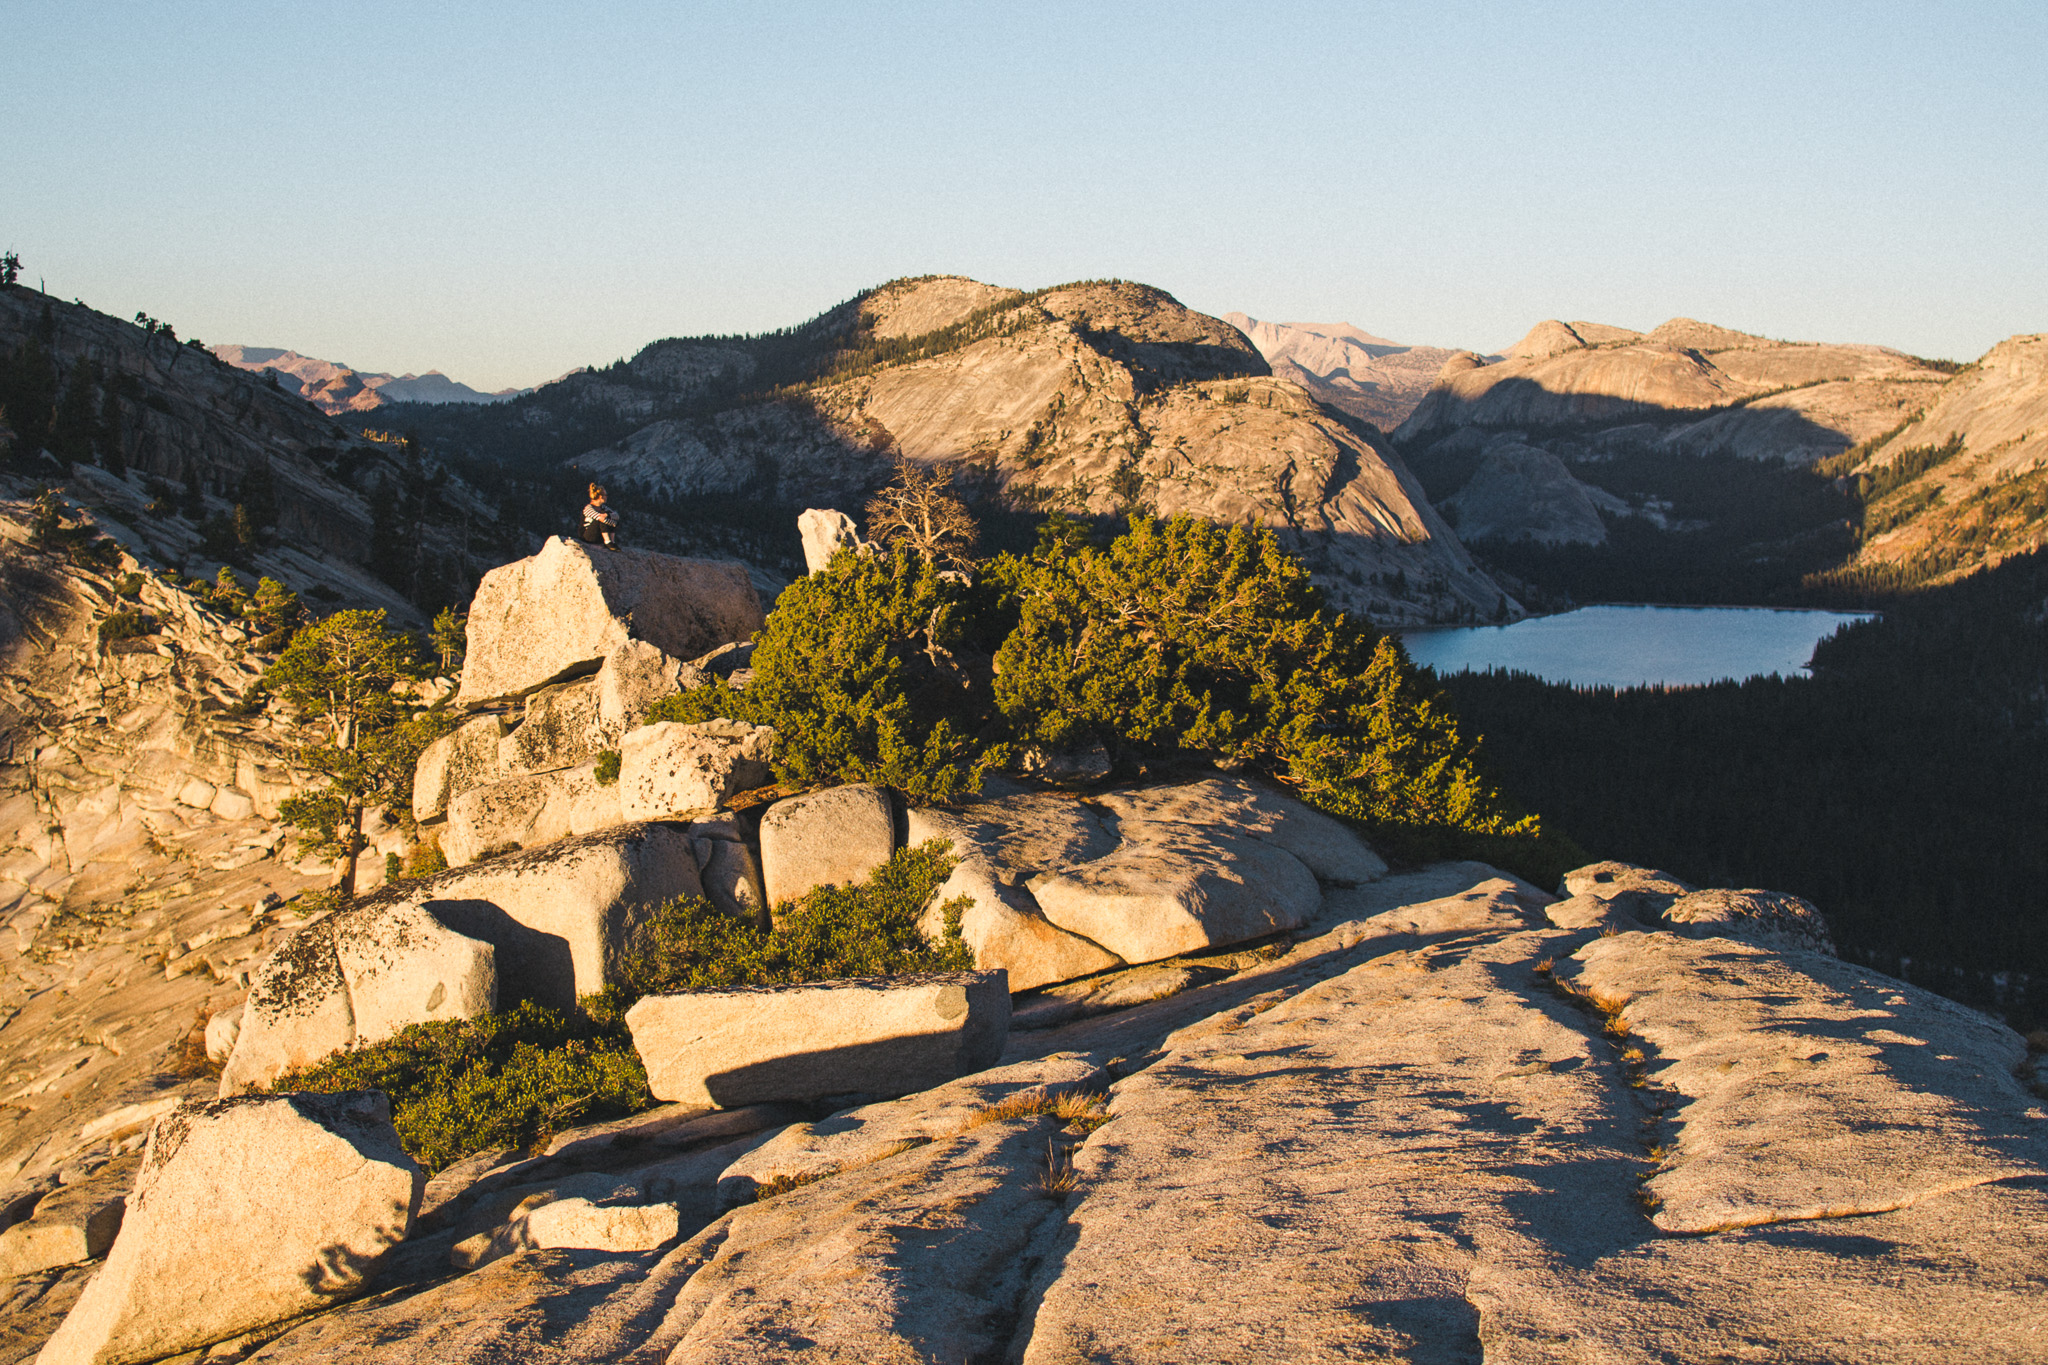 View-from-hill-in-yosemite